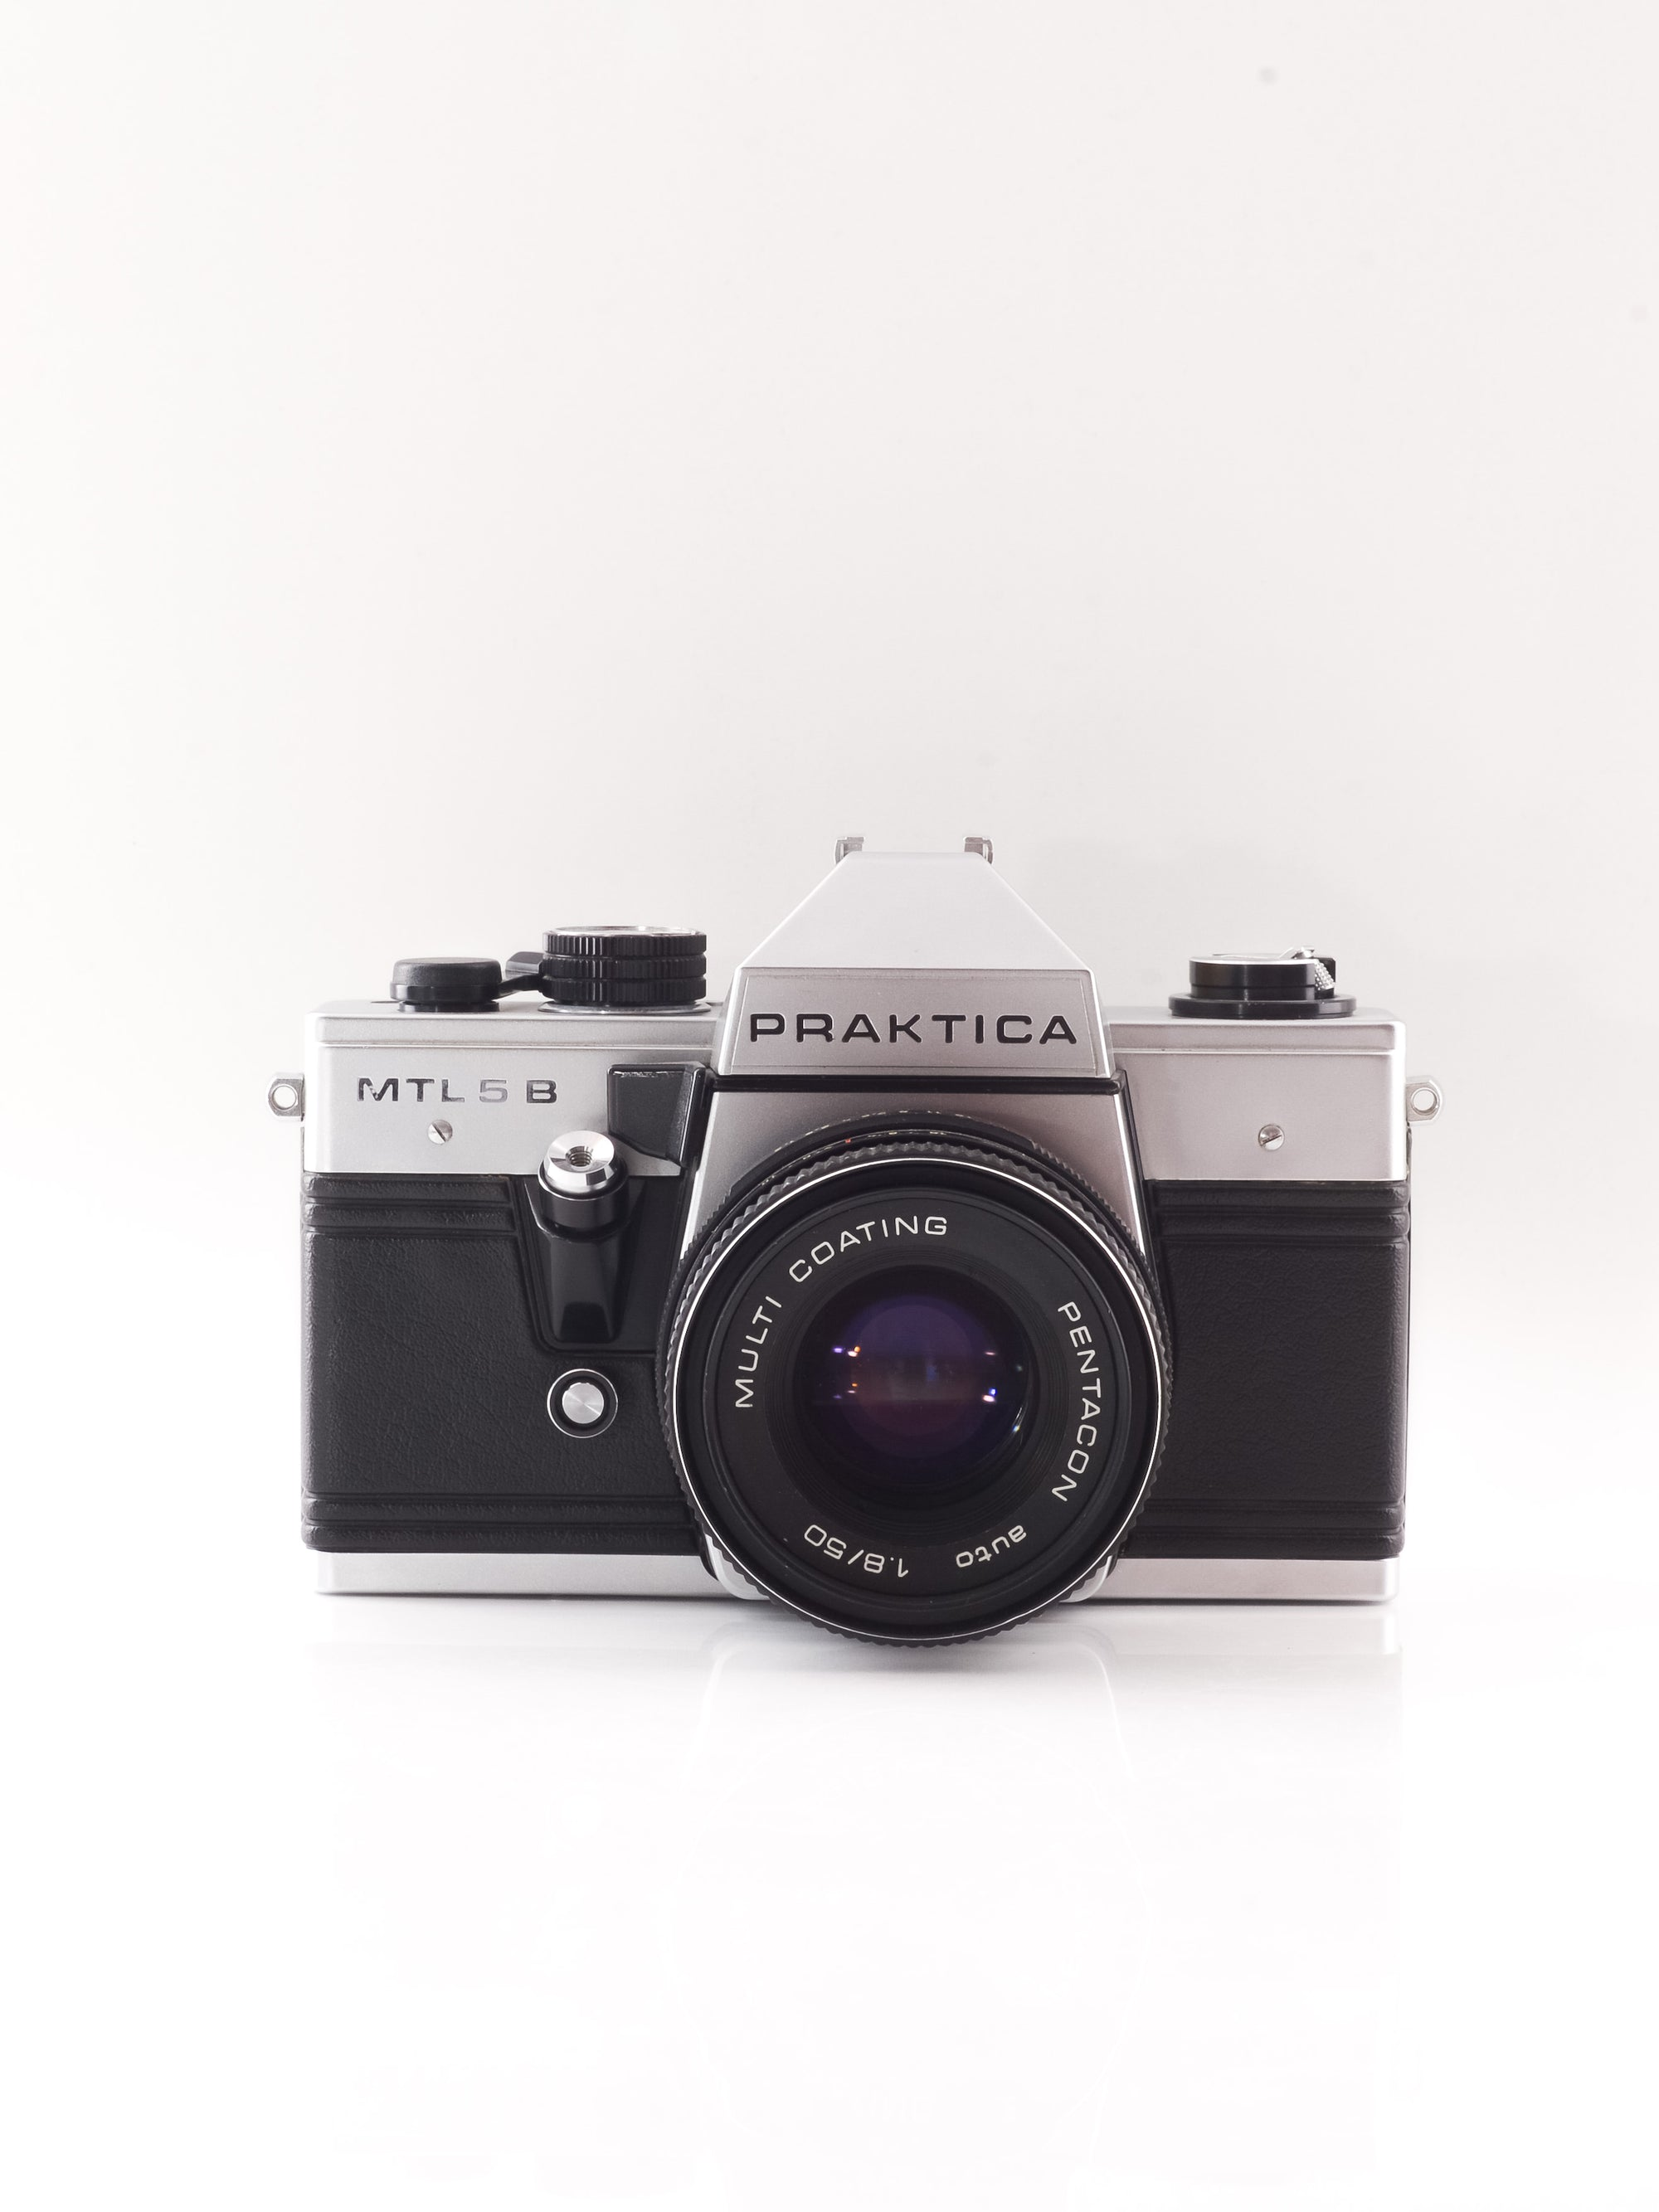 Praktica MTL 5B 35mm SLR Film Camera with 50mm f1.8 Lens